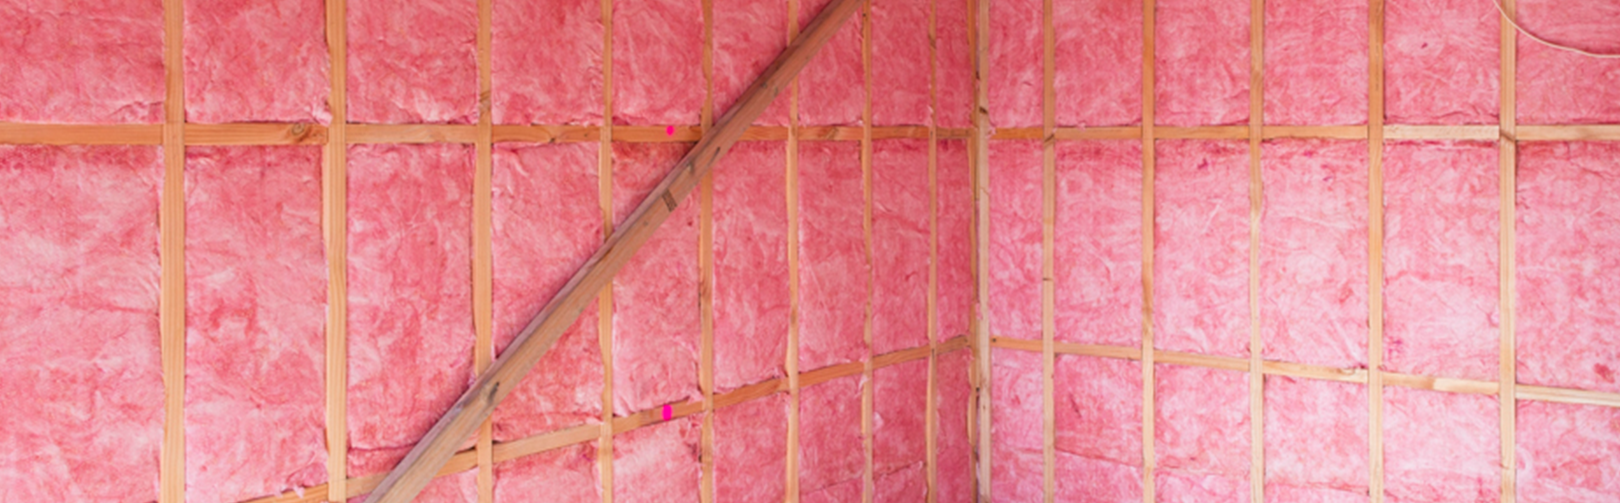 Achieving 150% Insulation of the Building Code to Satisfy our Covenants